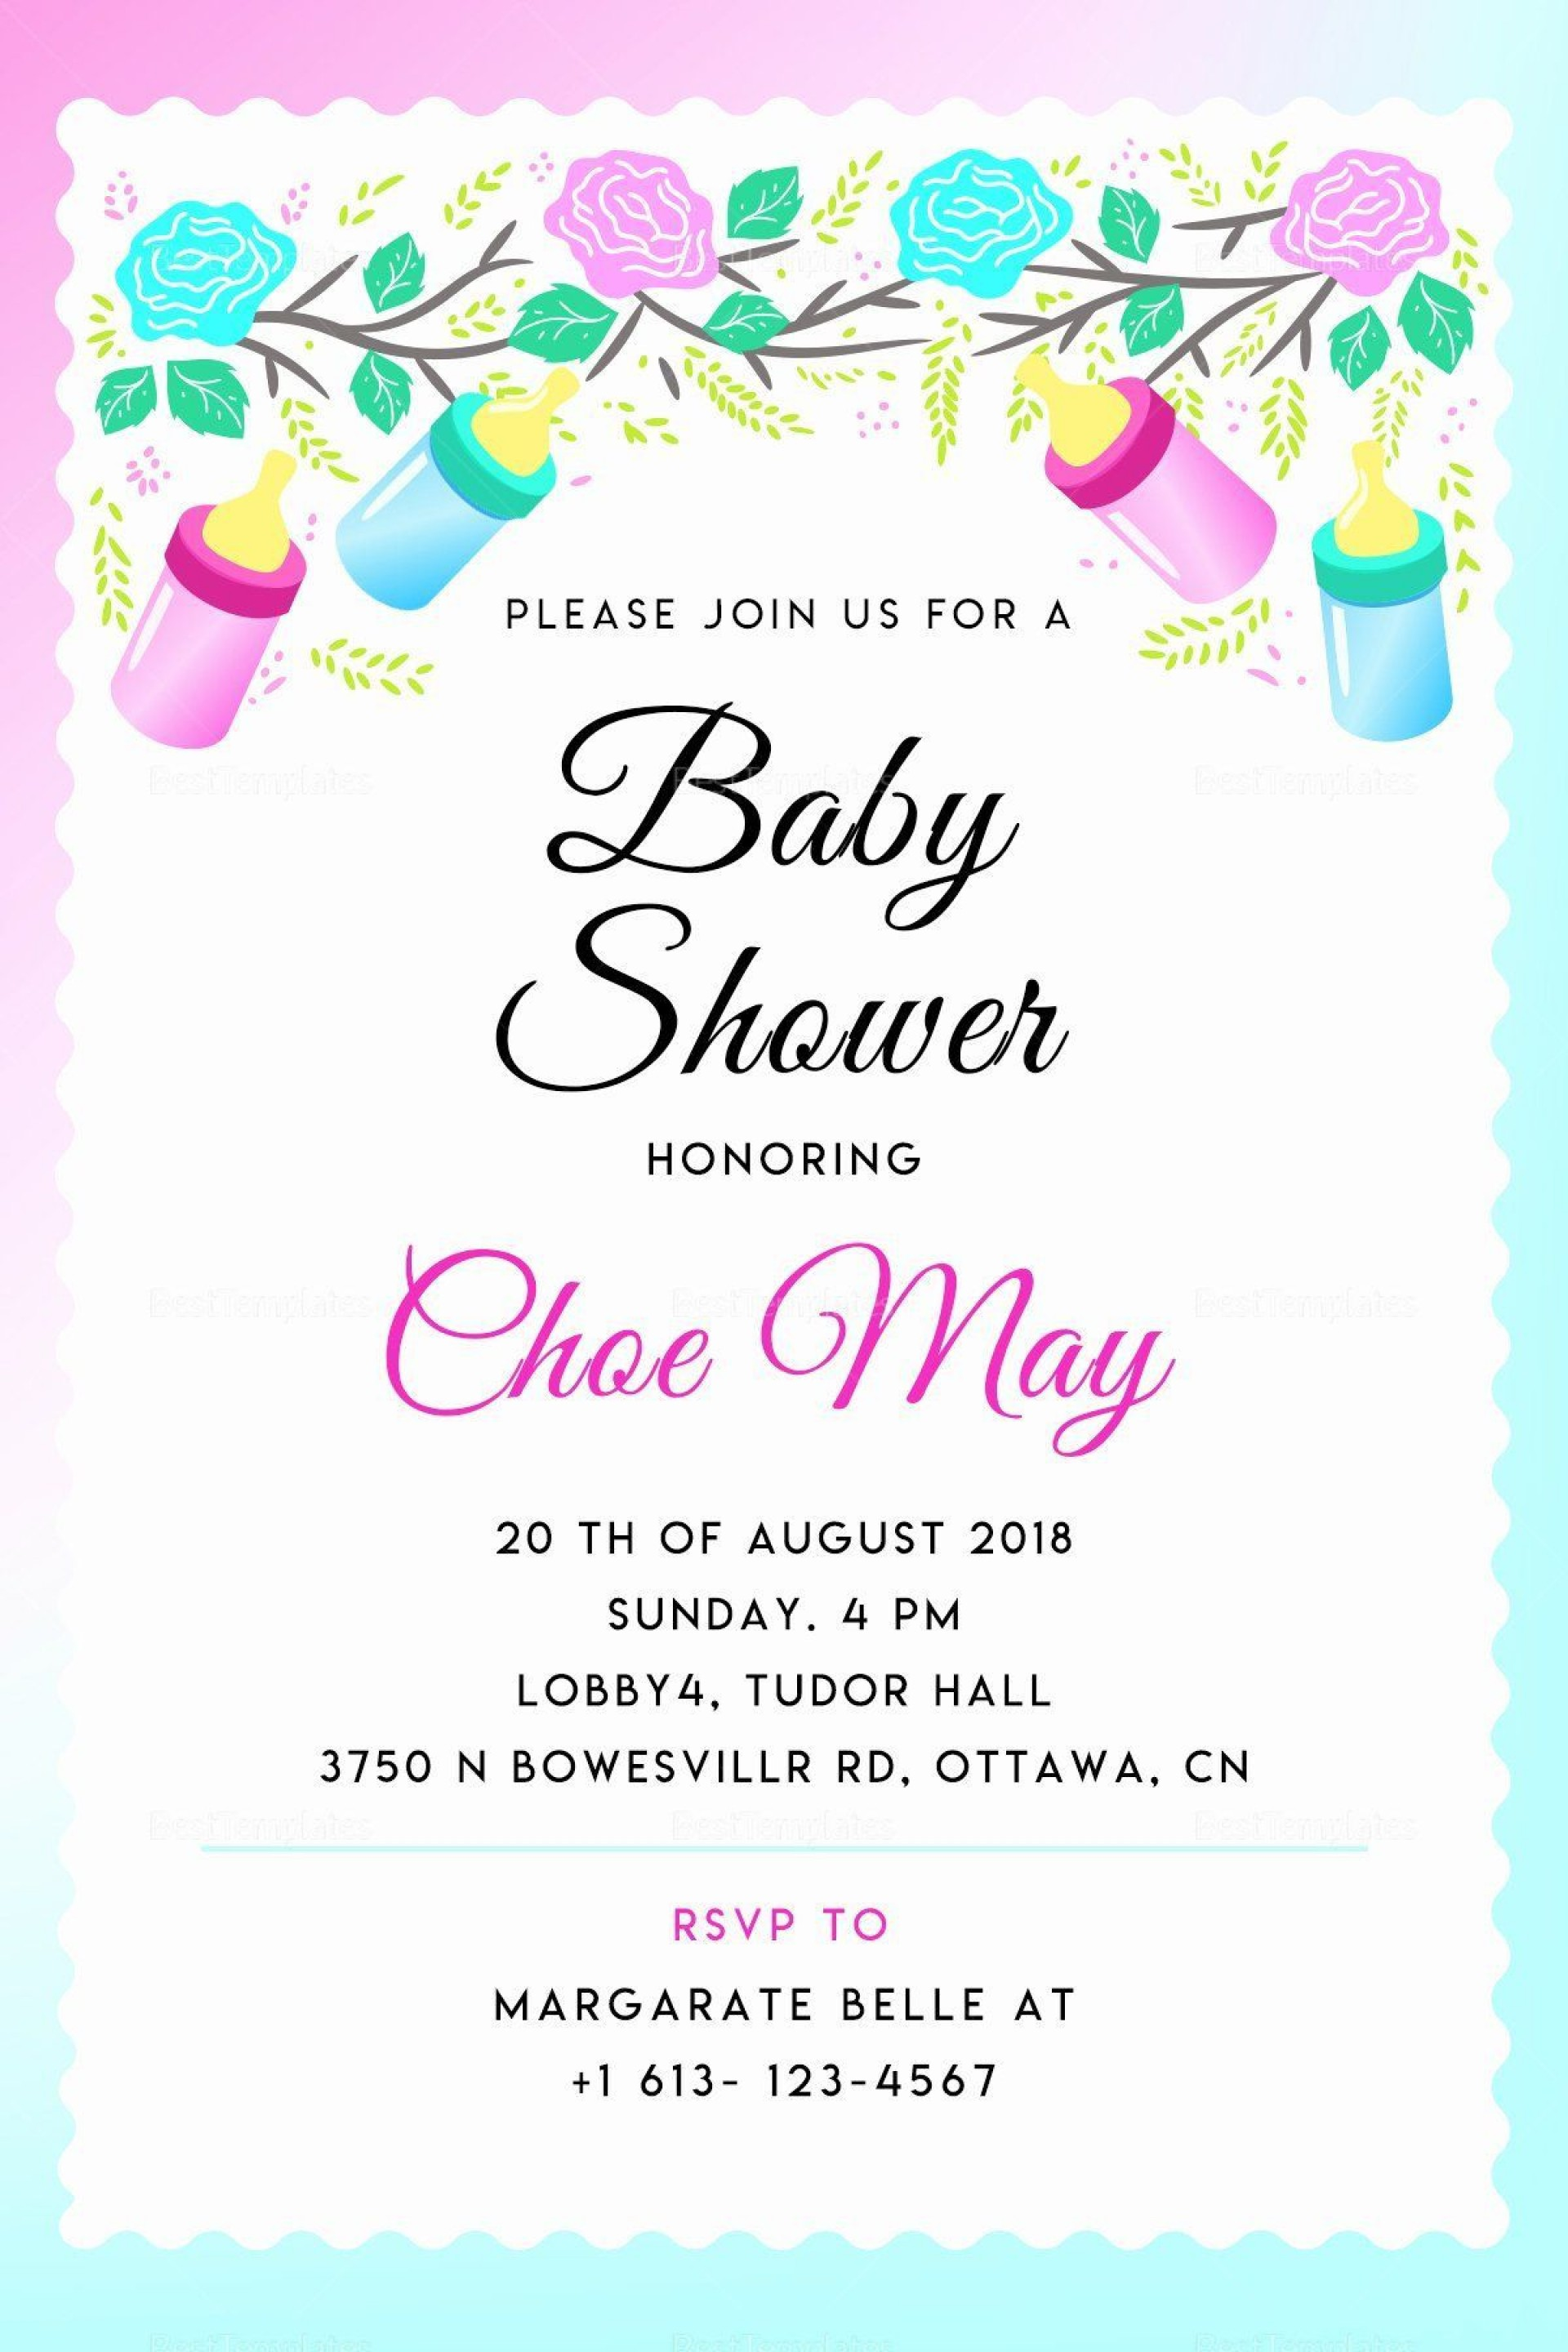 002 Frightening Baby Shower Invite Template Word Picture  Invitation Wording Sample Free Example1920